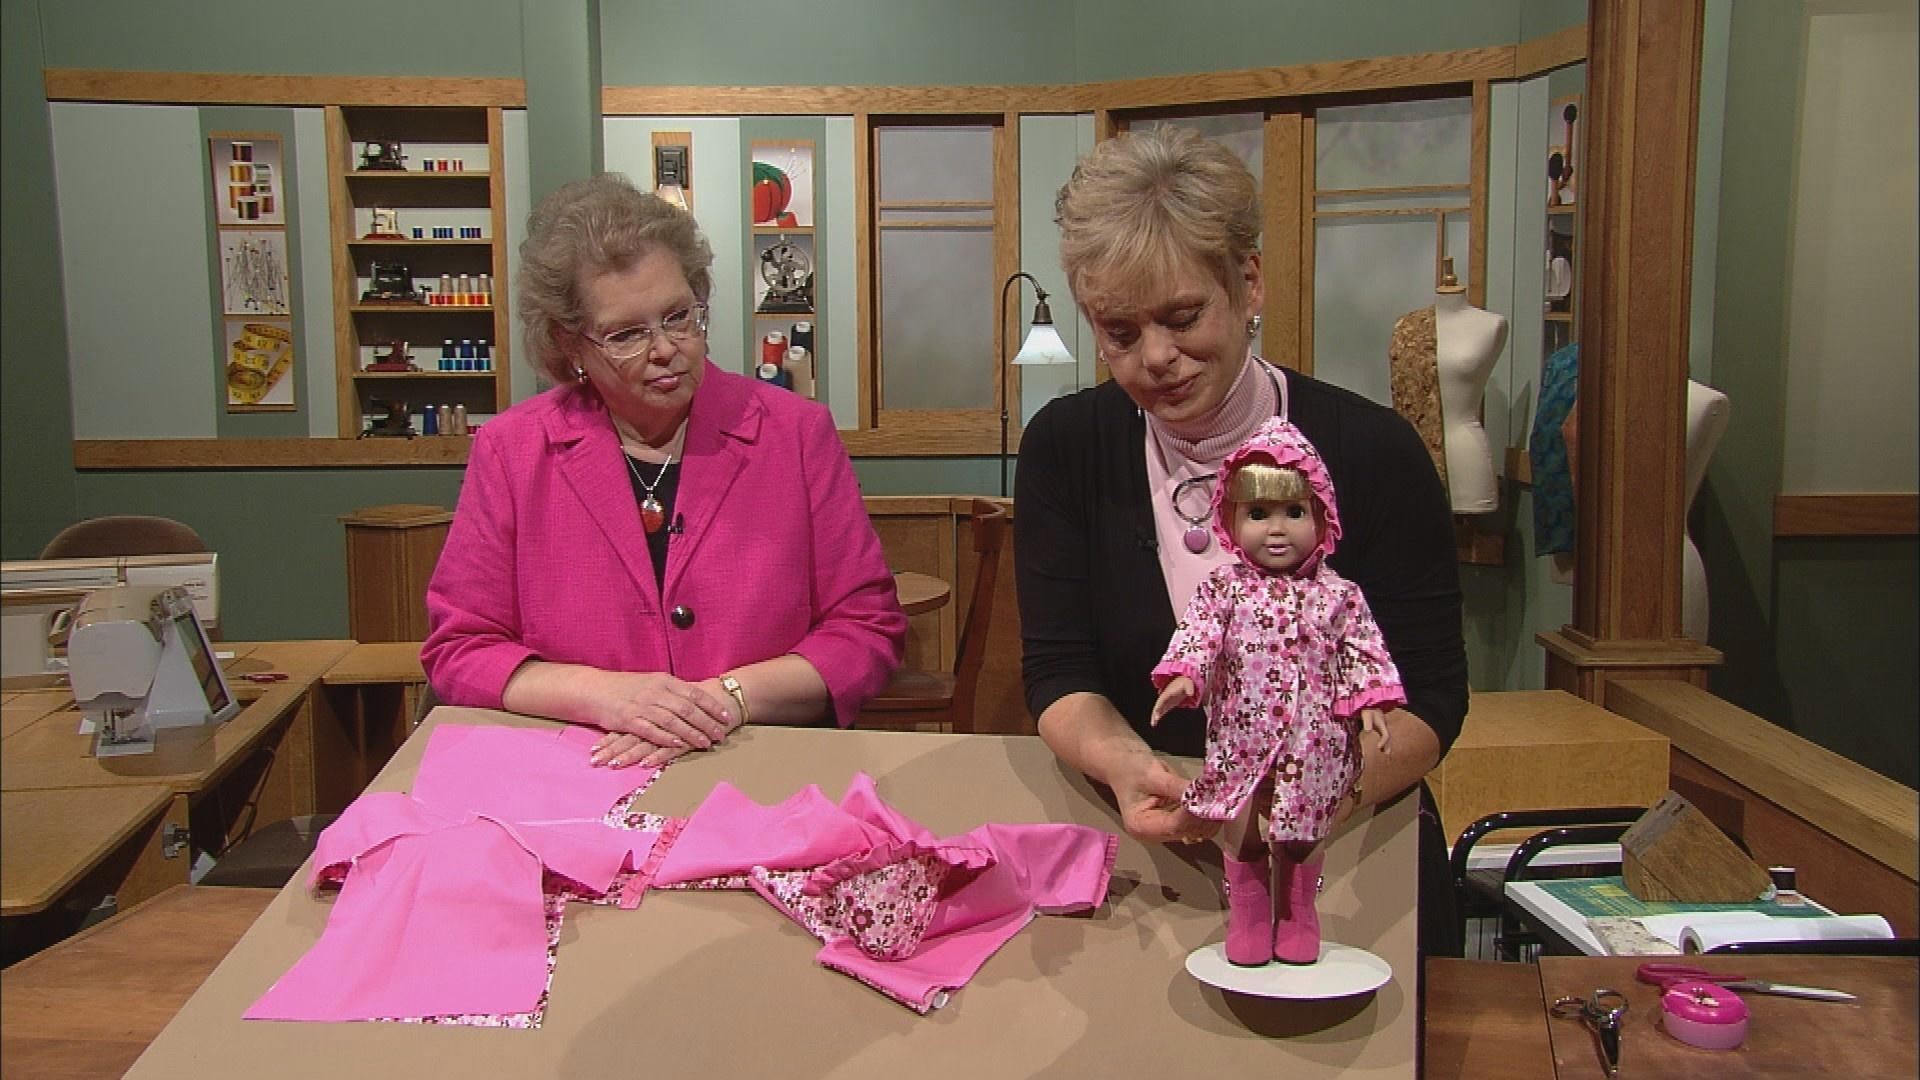 Doll fashion studio part 1 sewing with nancy pbs jeuxipadfo Image collections